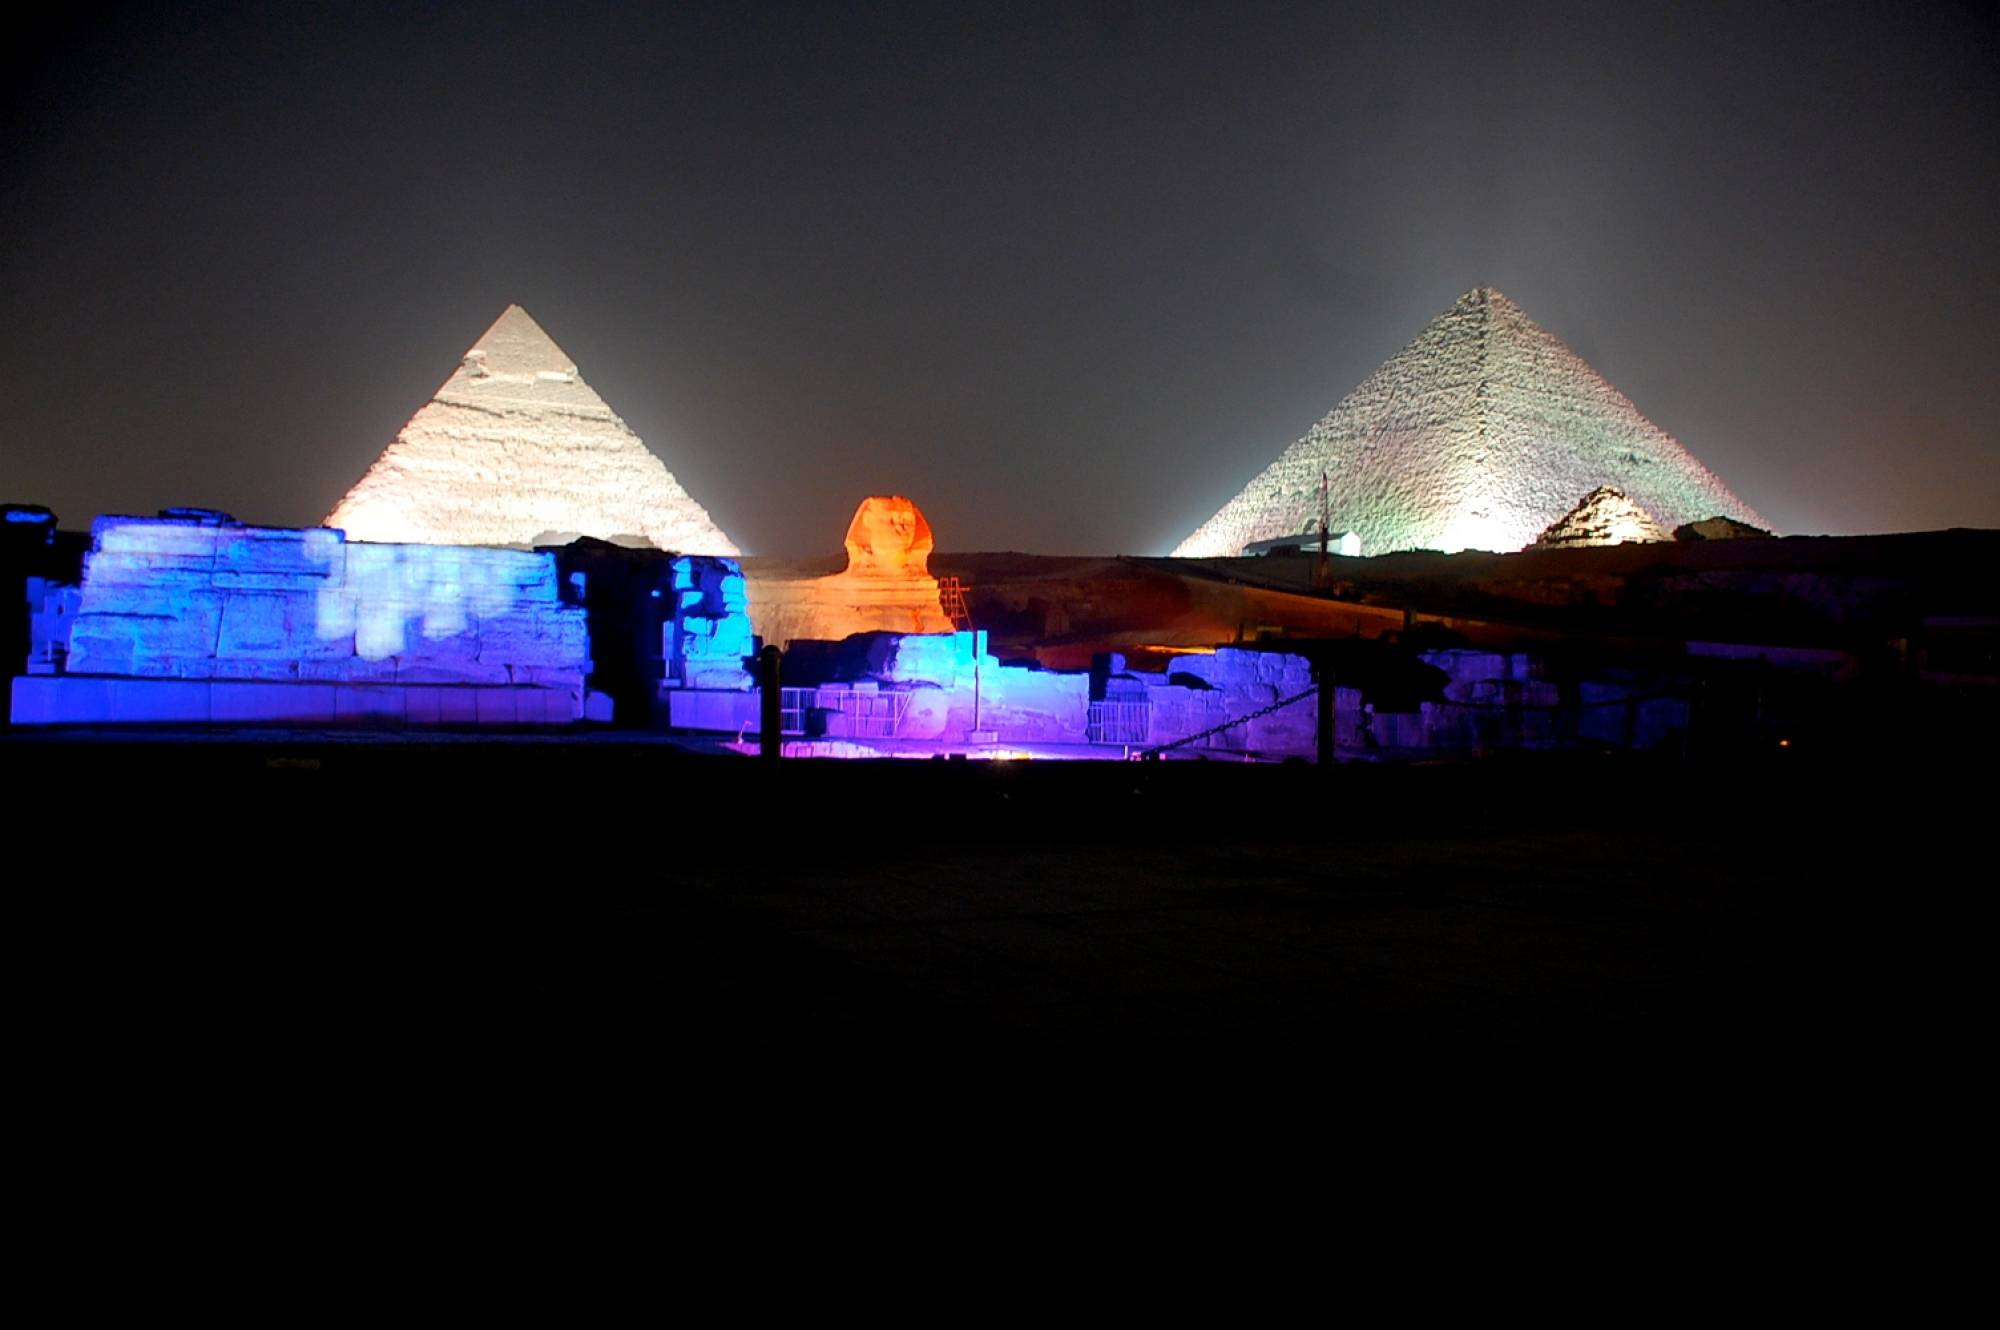 sound and light show pyramids of giza deluxe travel egypt. Black Bedroom Furniture Sets. Home Design Ideas